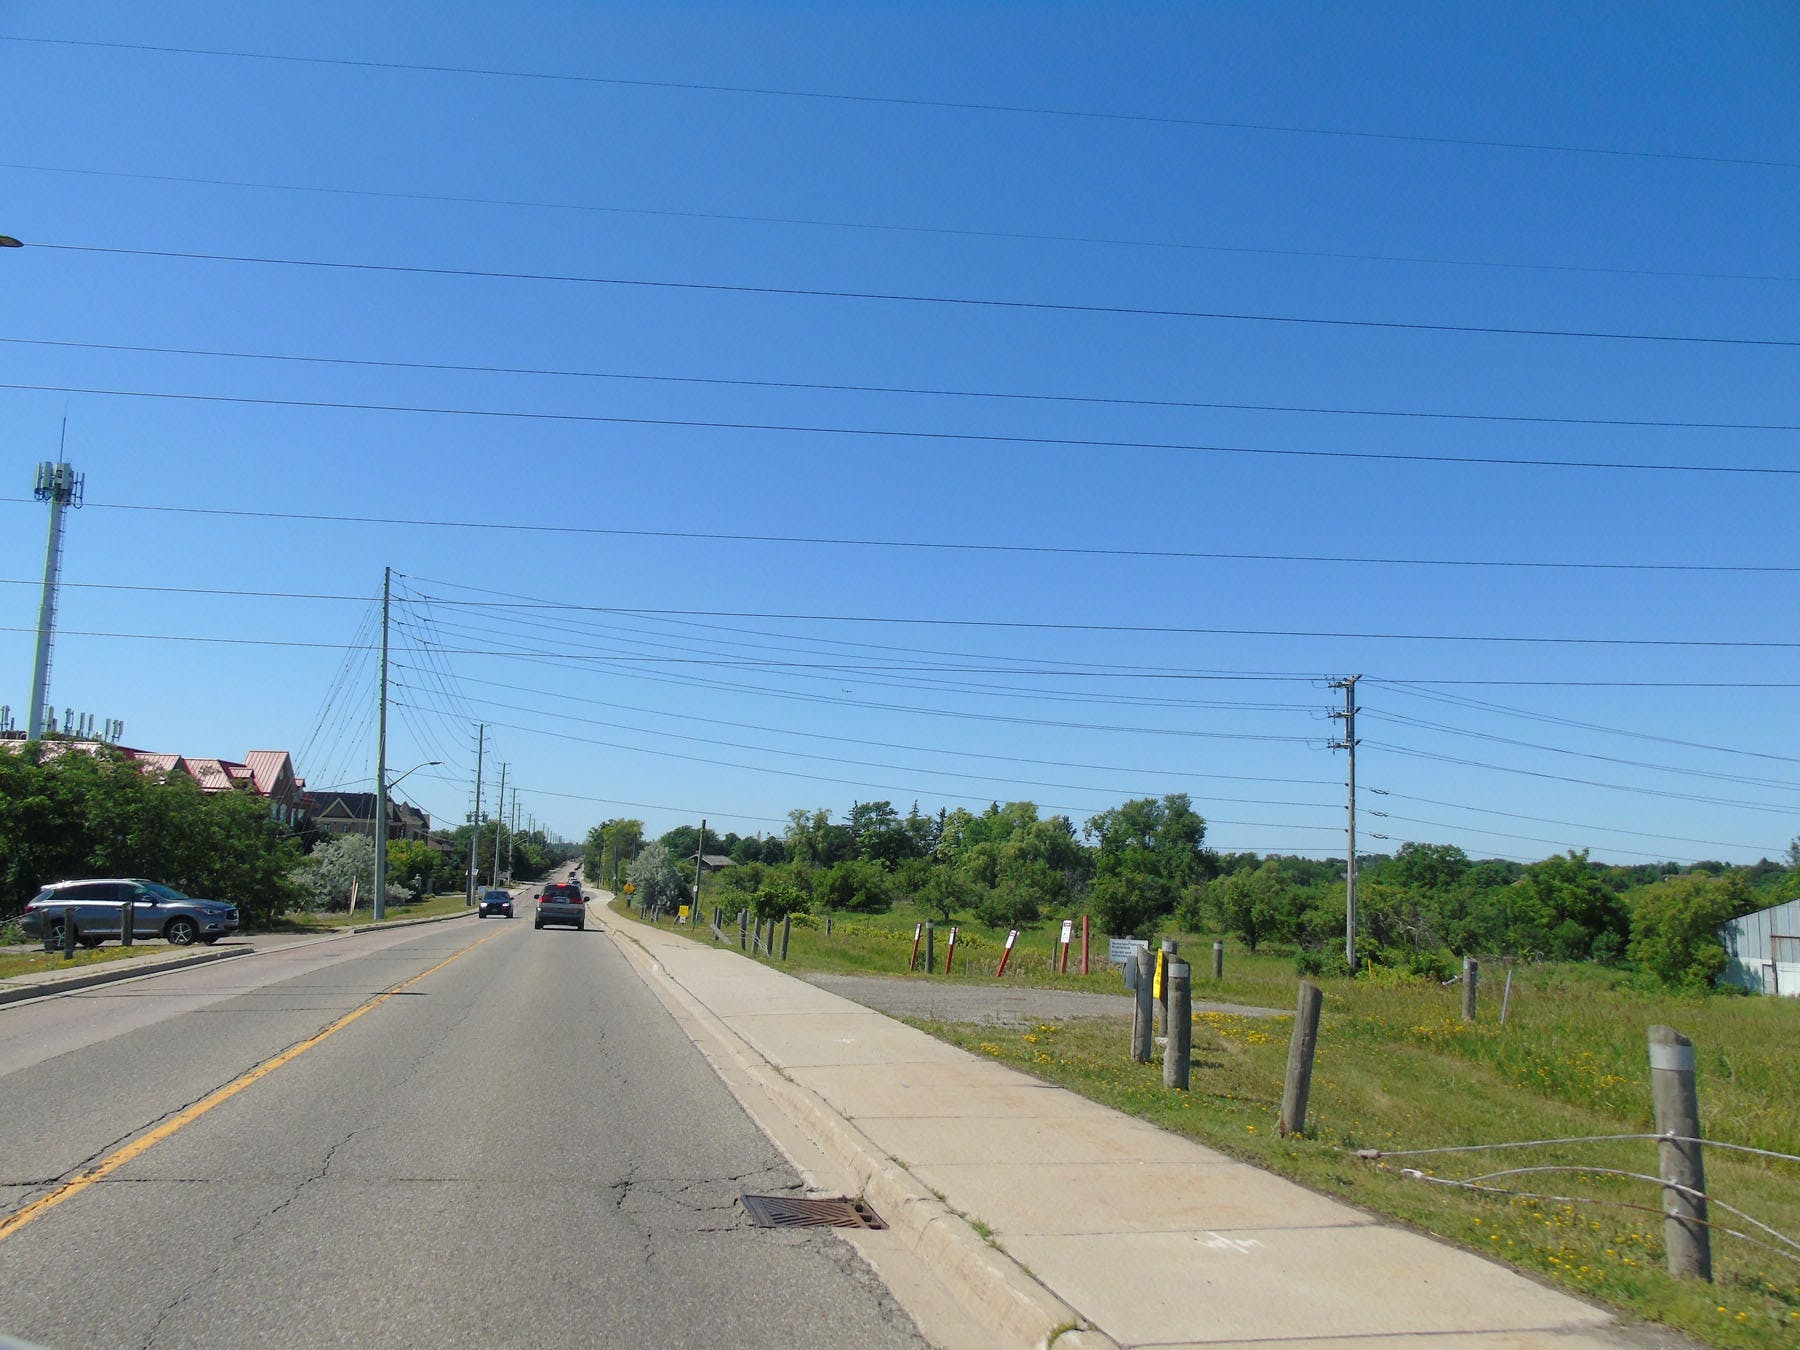 Scenic views along Mississauga Road